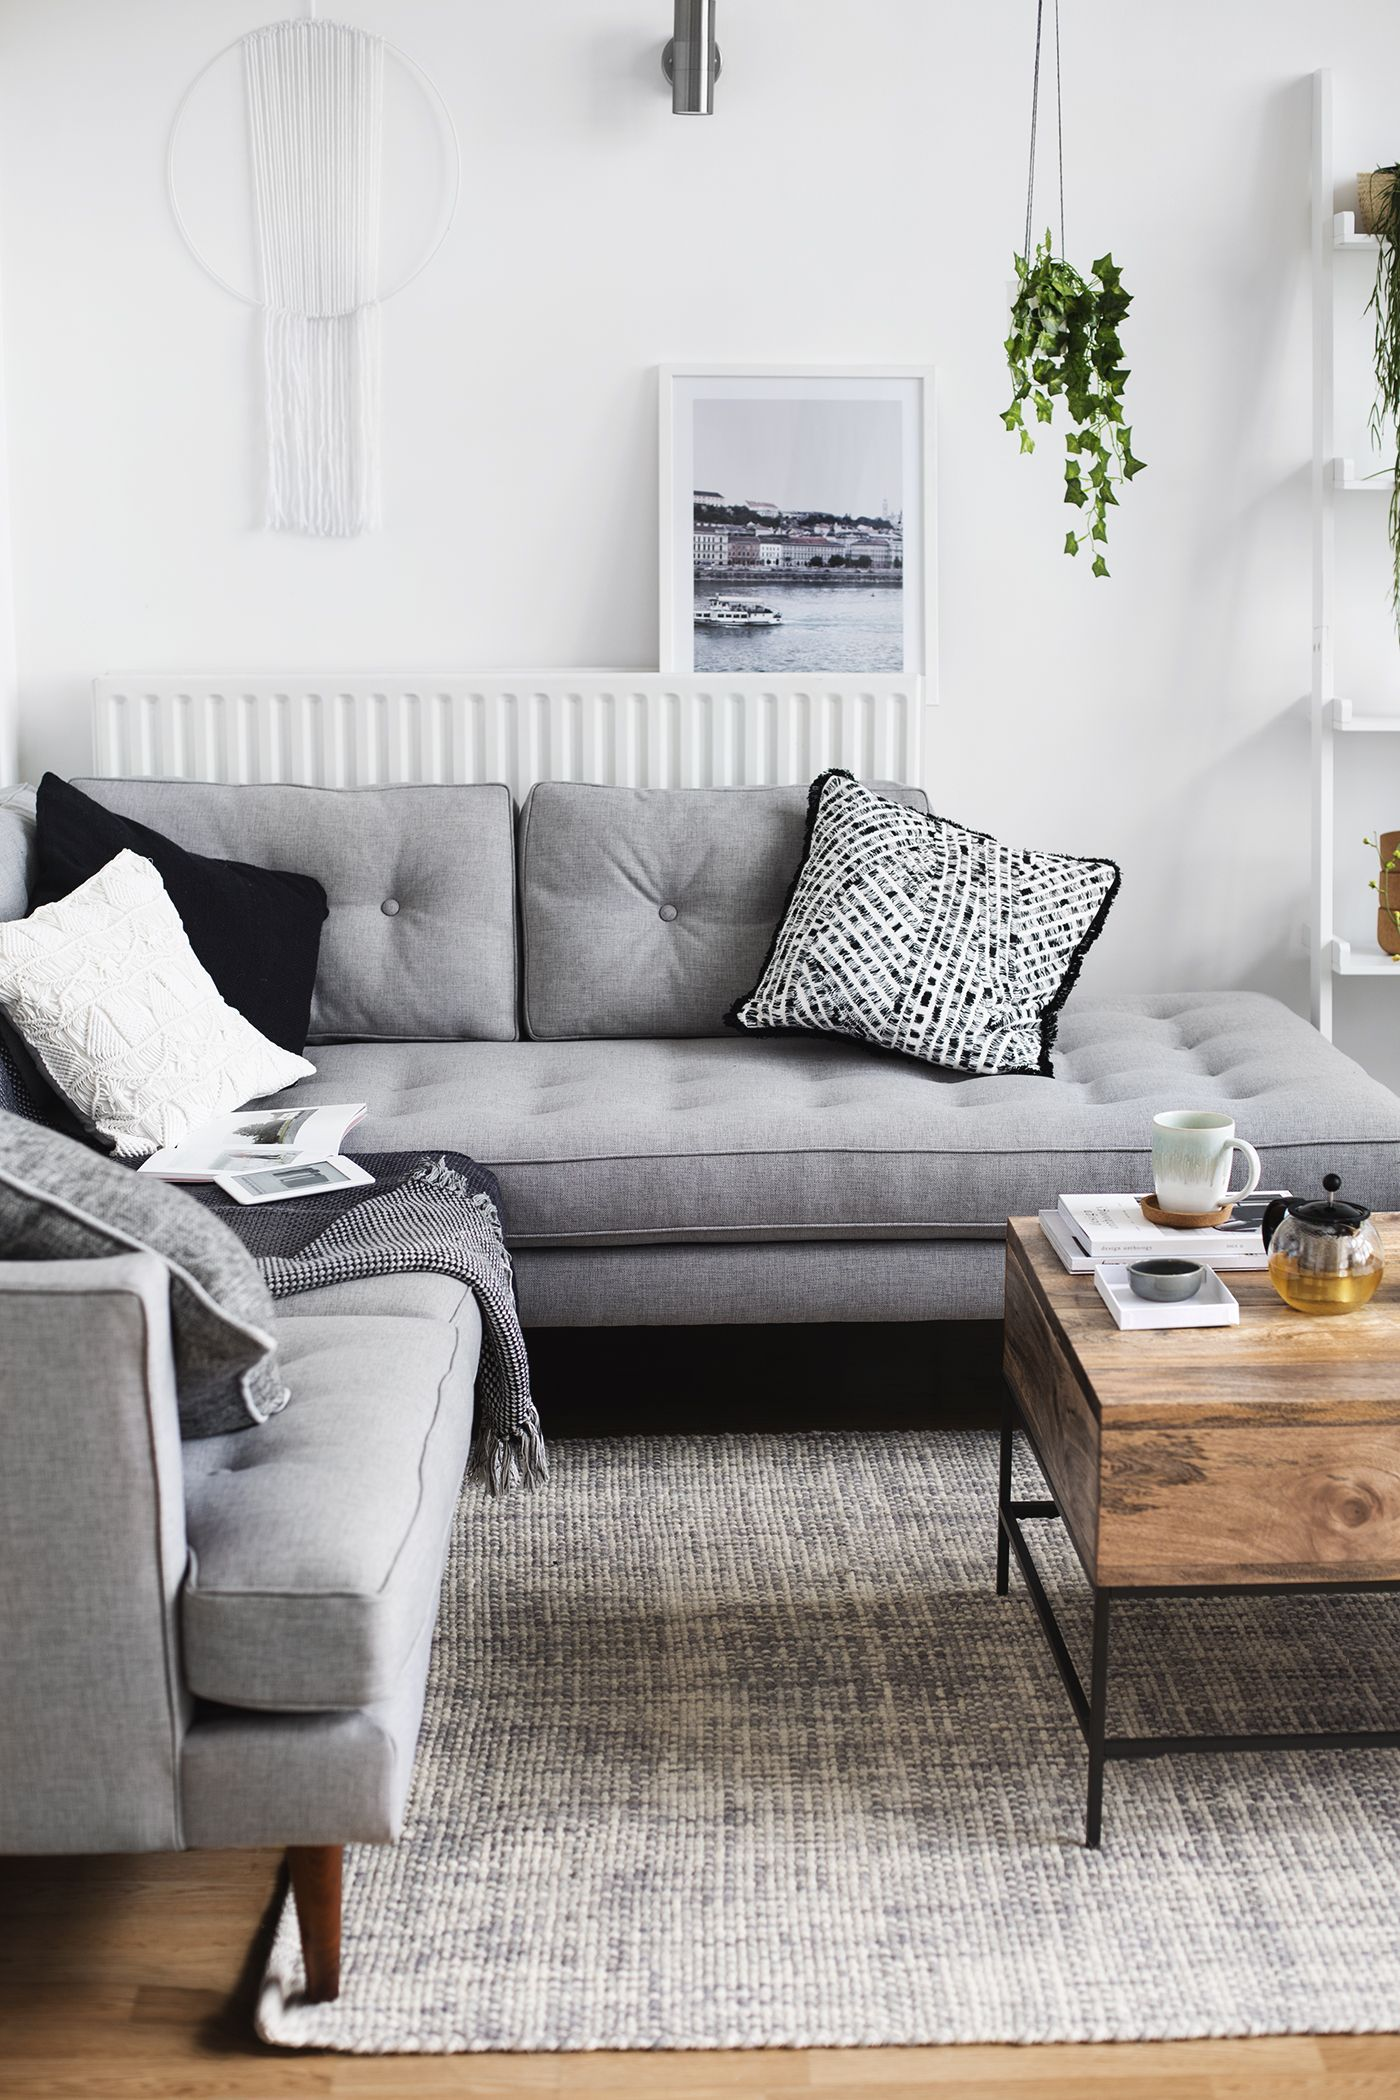 Home Decor Inspiration To Revamp Your Home This Winter Www Essentialhome Eu Blog Scandin Couches Living Room Living Room Grey Minimalist Living Room Design